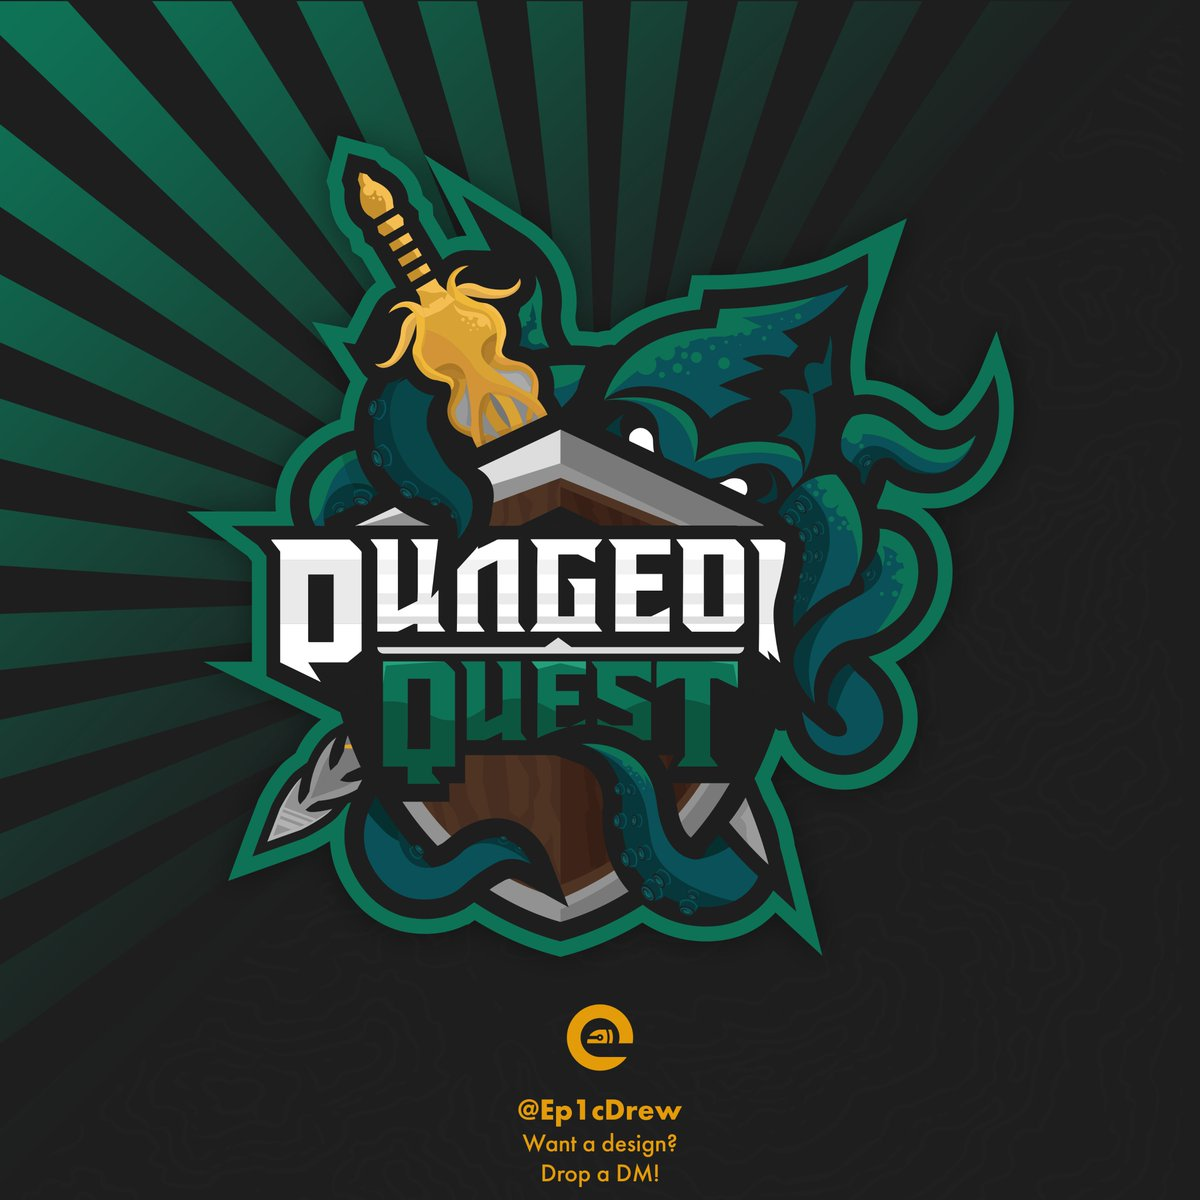 Roblox Quest Game Ep1cdrew On Twitter Oooo Commission Logo For The Game Dungeon Quest Ghastly Harbor Theme Had A Lot Of Fun Making This S Rt S Appreciated Robloxdev Roblox Known Members Devs Vcaffy